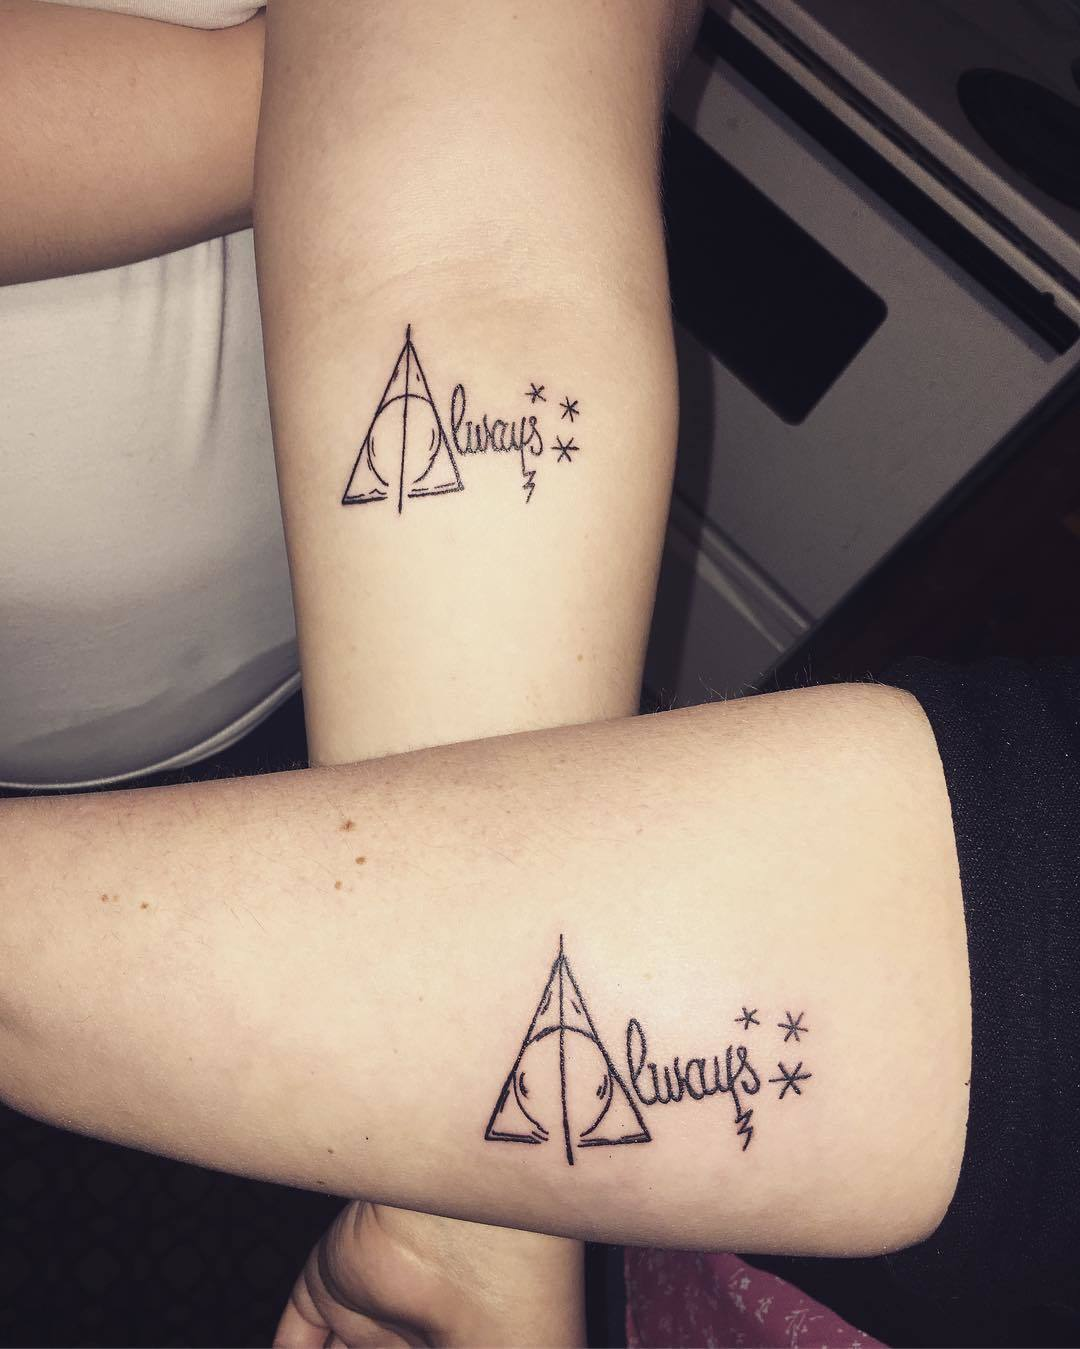 c14d8e8e403e7 Especially when you're channeling his magic into awesome matching family  tattoos. Thanks for reminding us Emma Meeks!